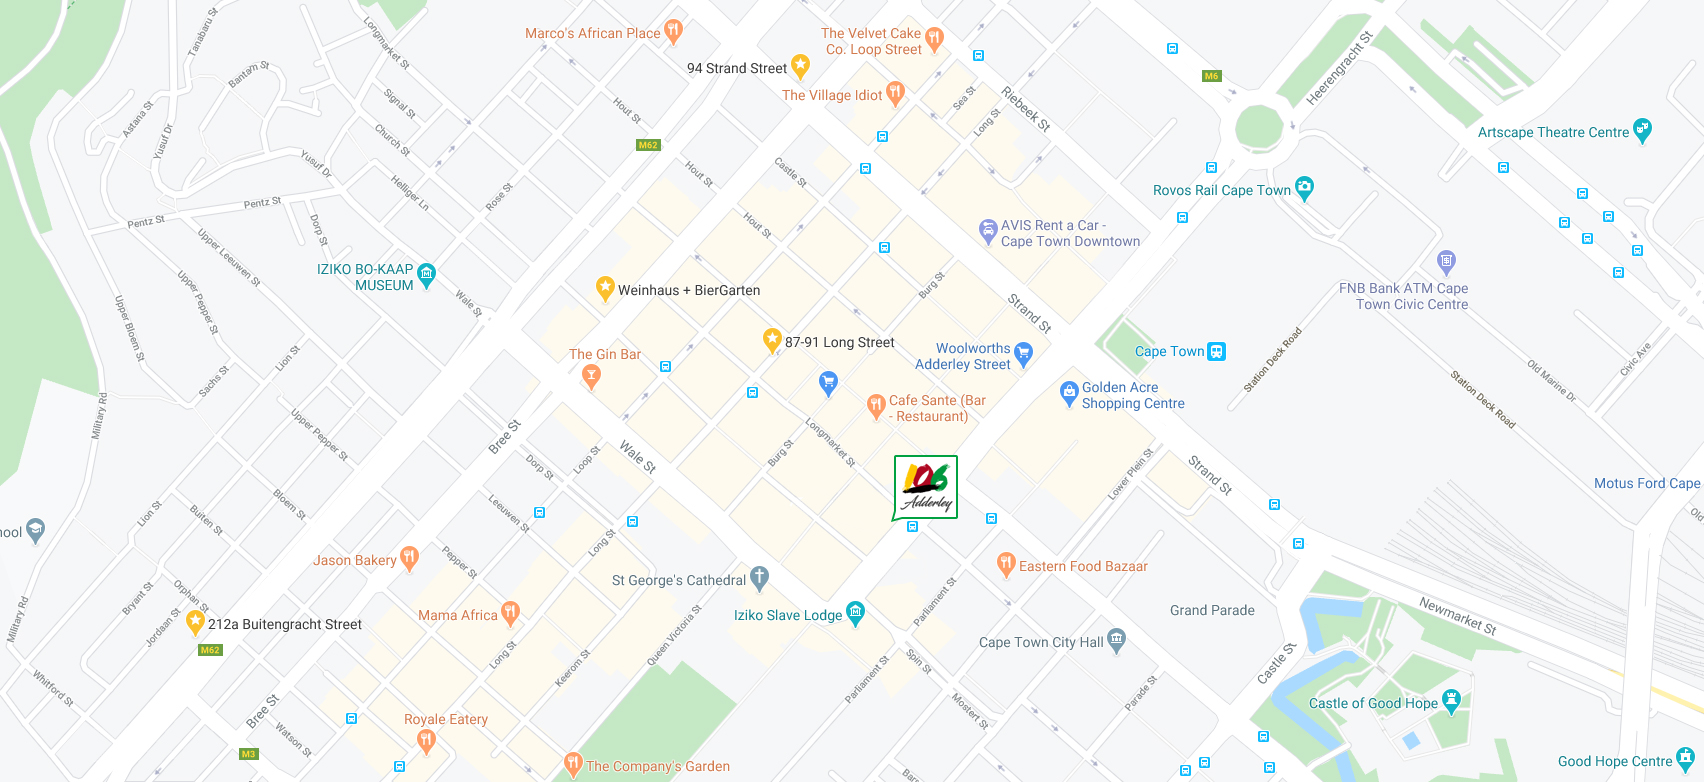 Road map of hotel location